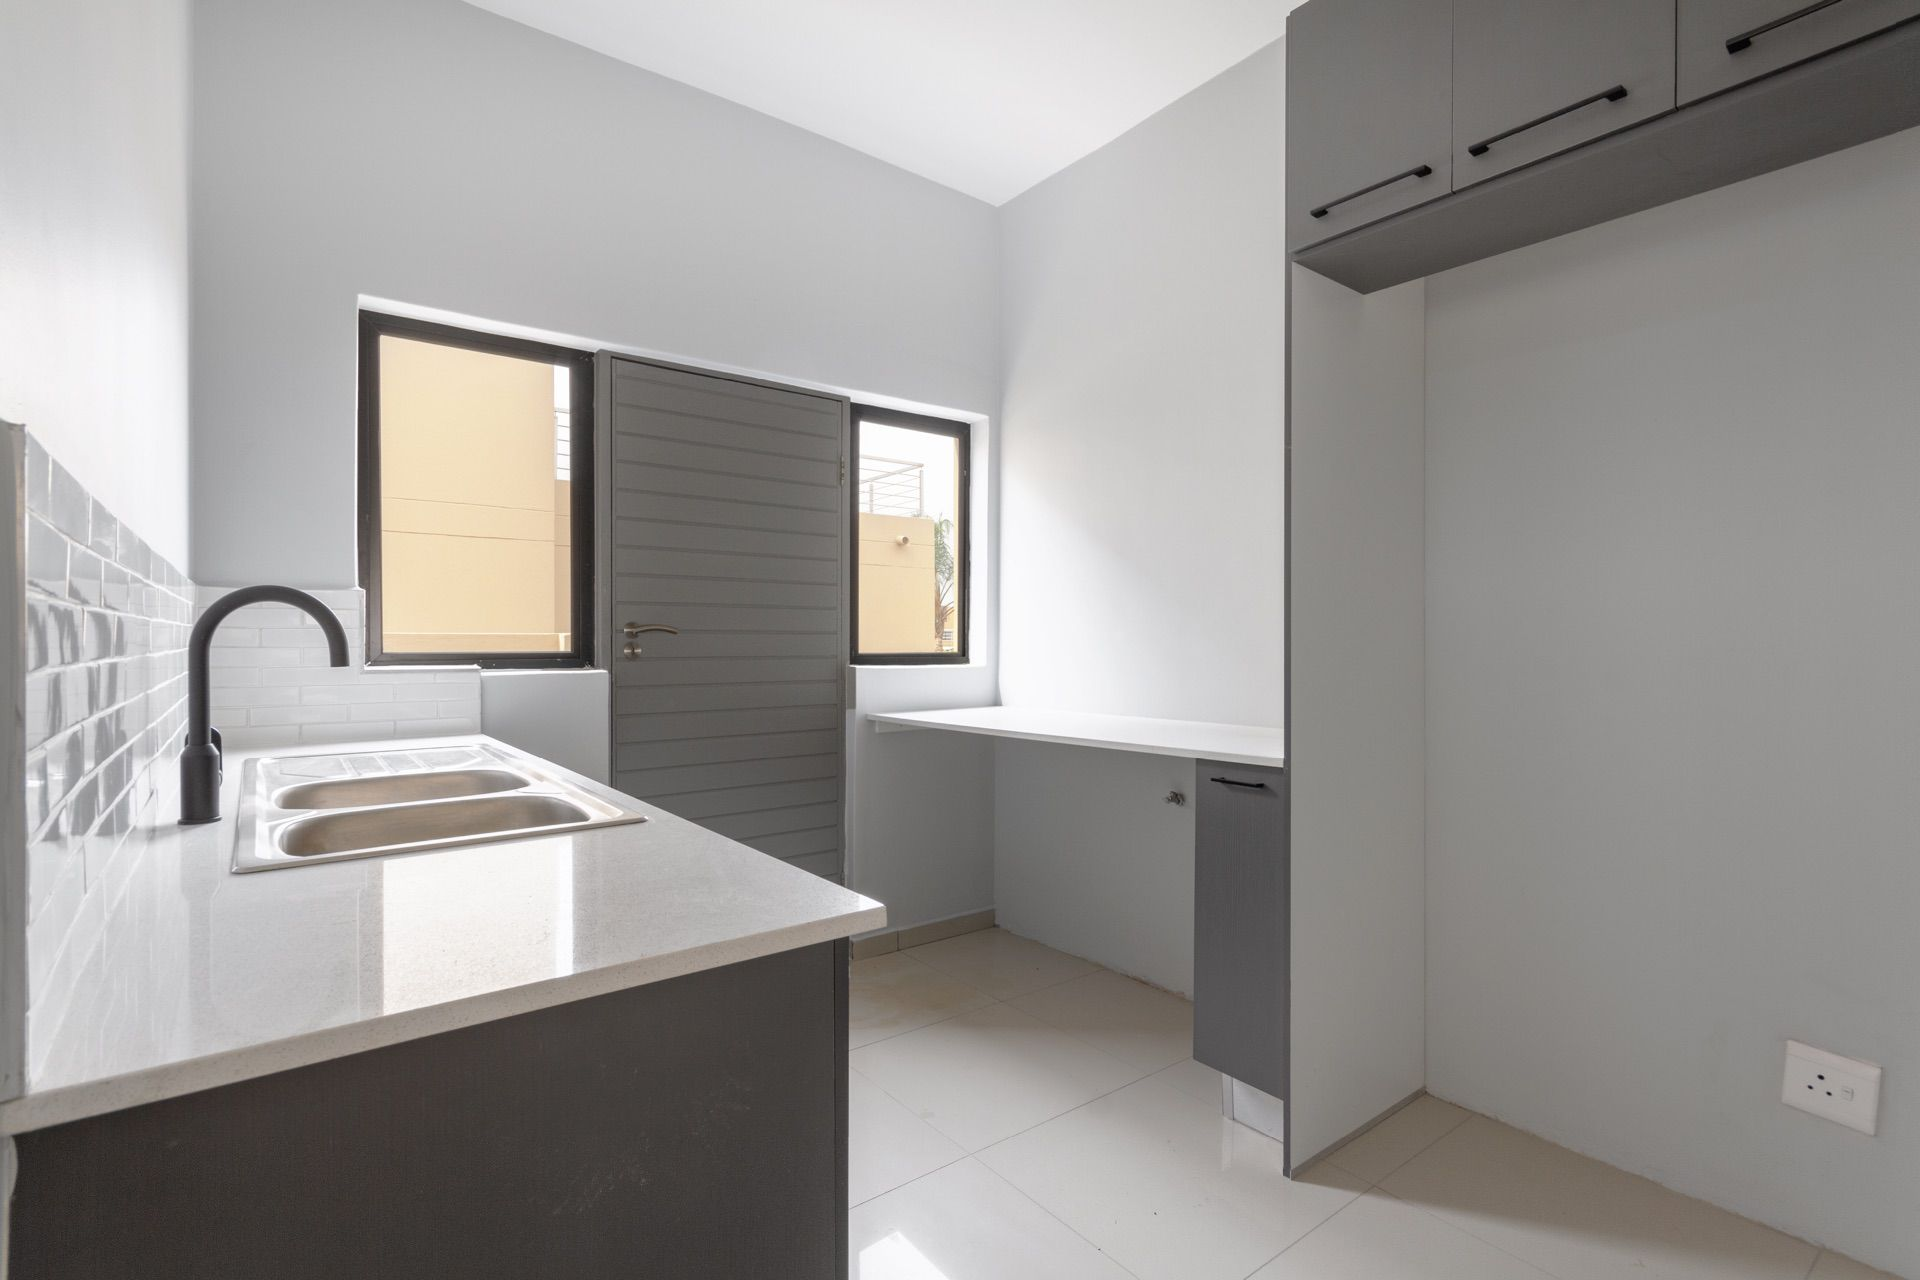 Scullery with space for 3 appliances